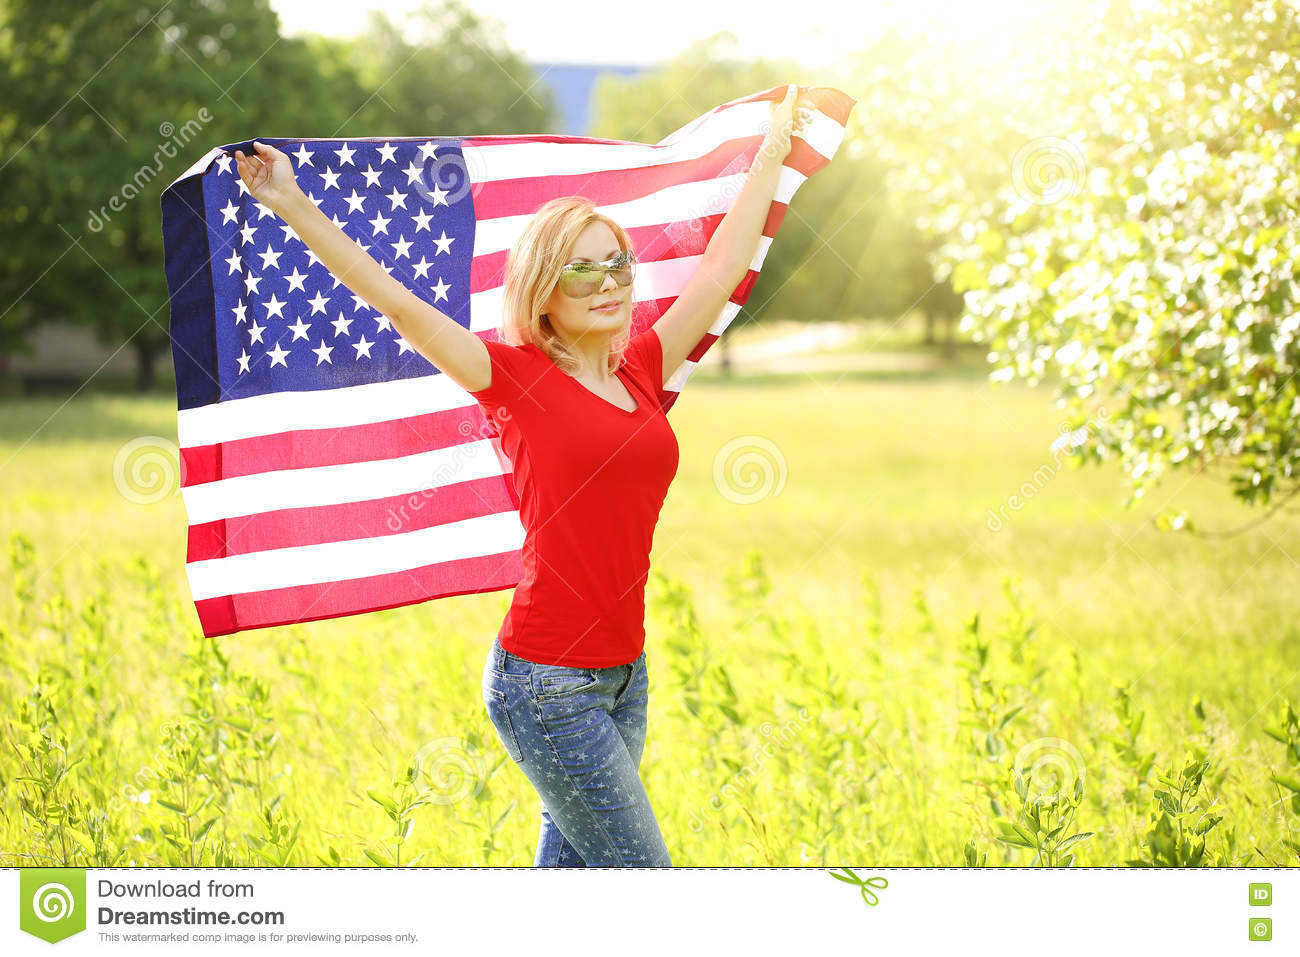 Patriotic young woman with American flag